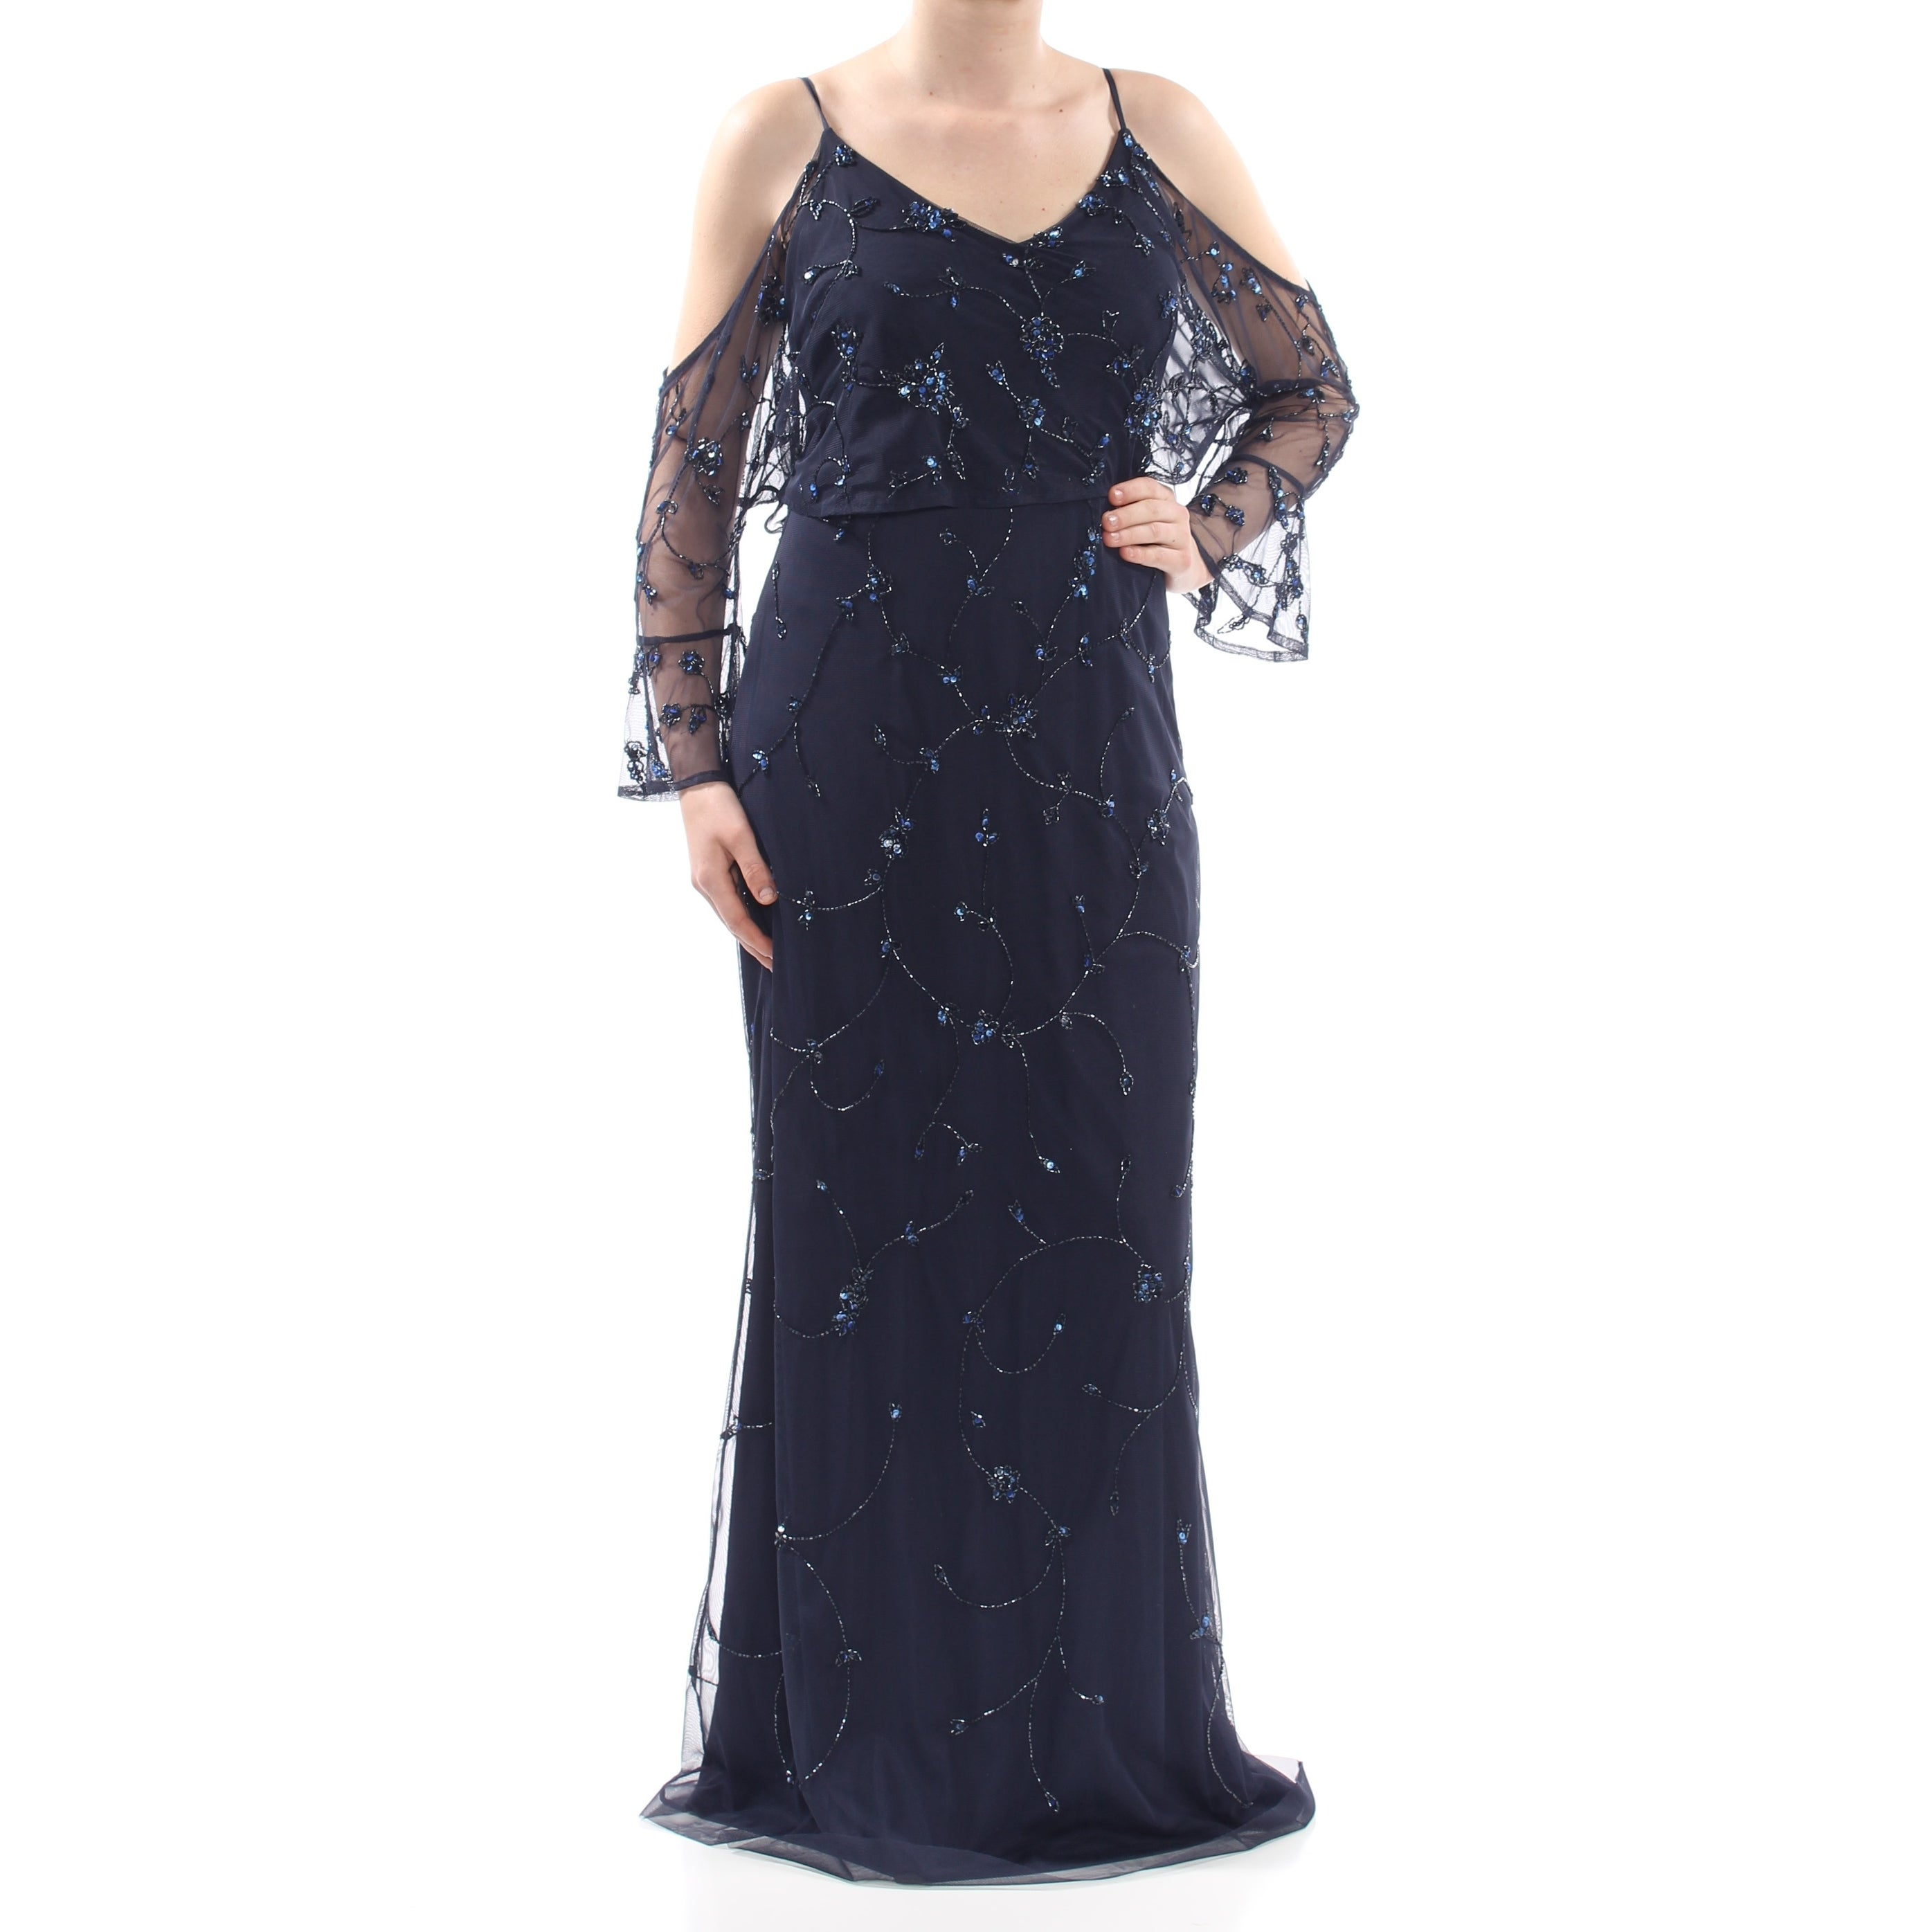 2c6461c2 Shop ADRIANNA PAPELL Womens Navy Beaded Cold Shoulder Twilight Popover Gown  Long Sleeve V Neck Full-Length Formal Dress Size: 10 - Free Shipping Today  ...